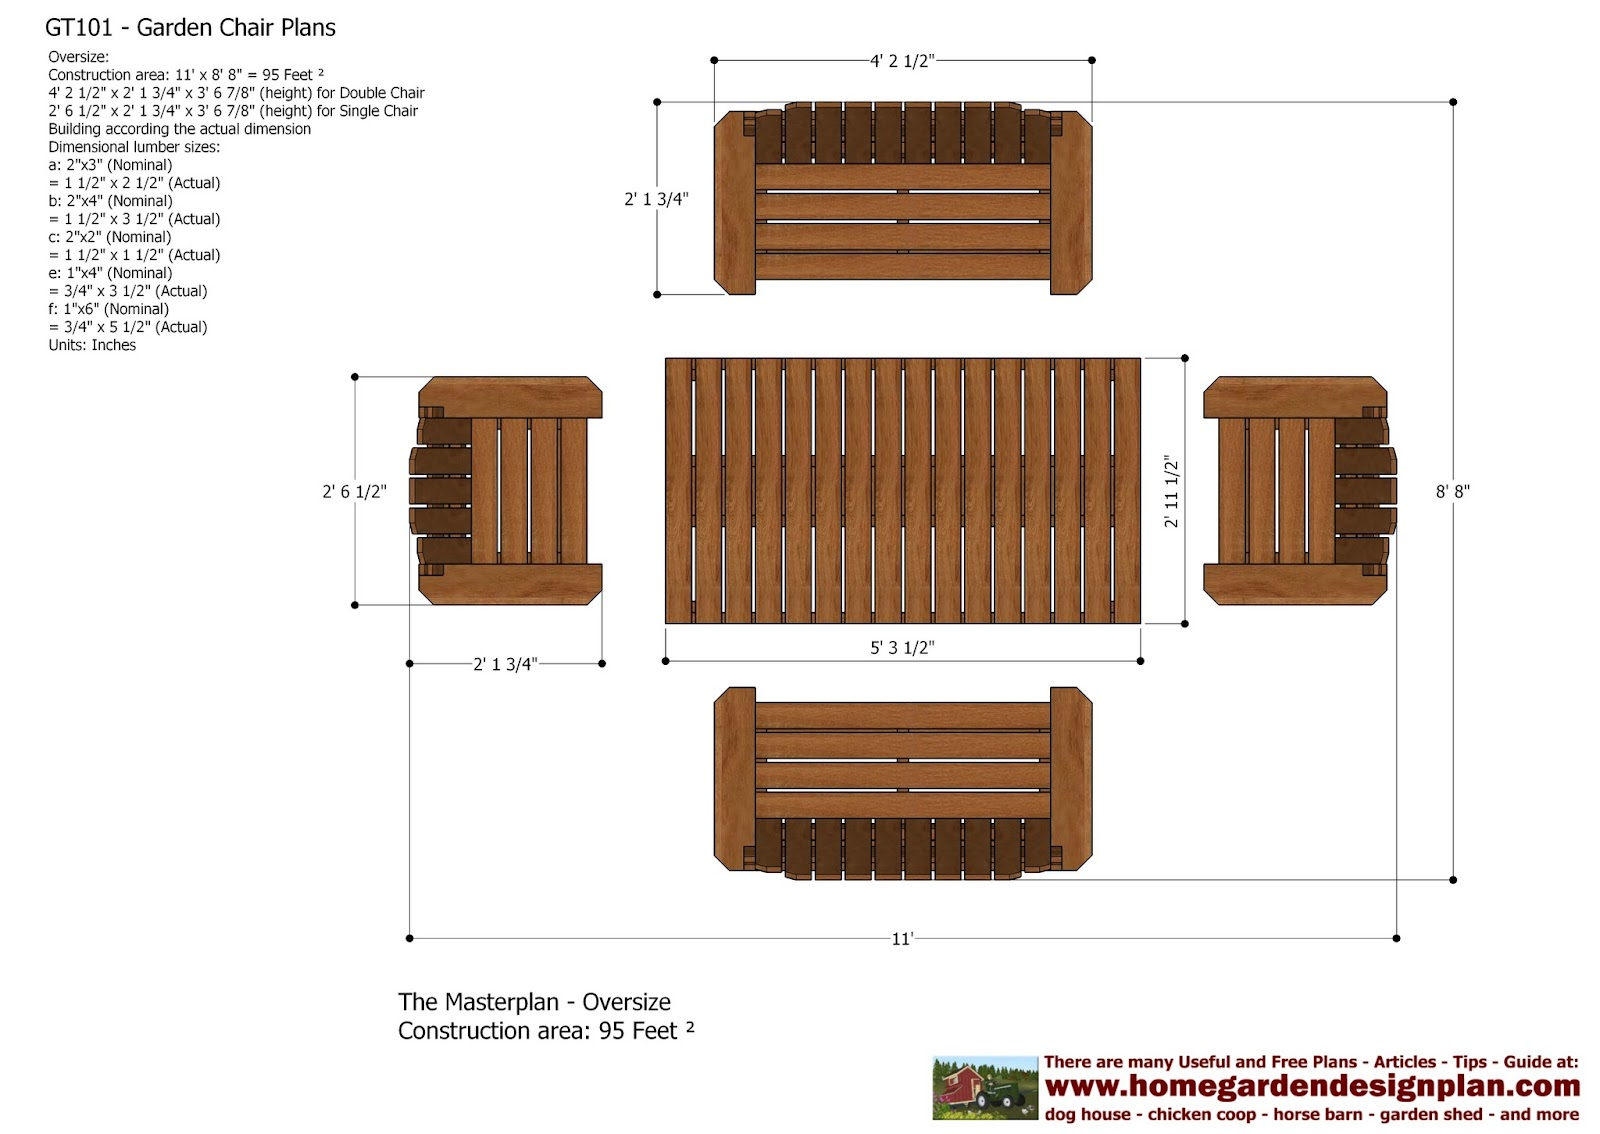 Home garden plans gt101 garden teak table plans out for Furniture blueprint maker